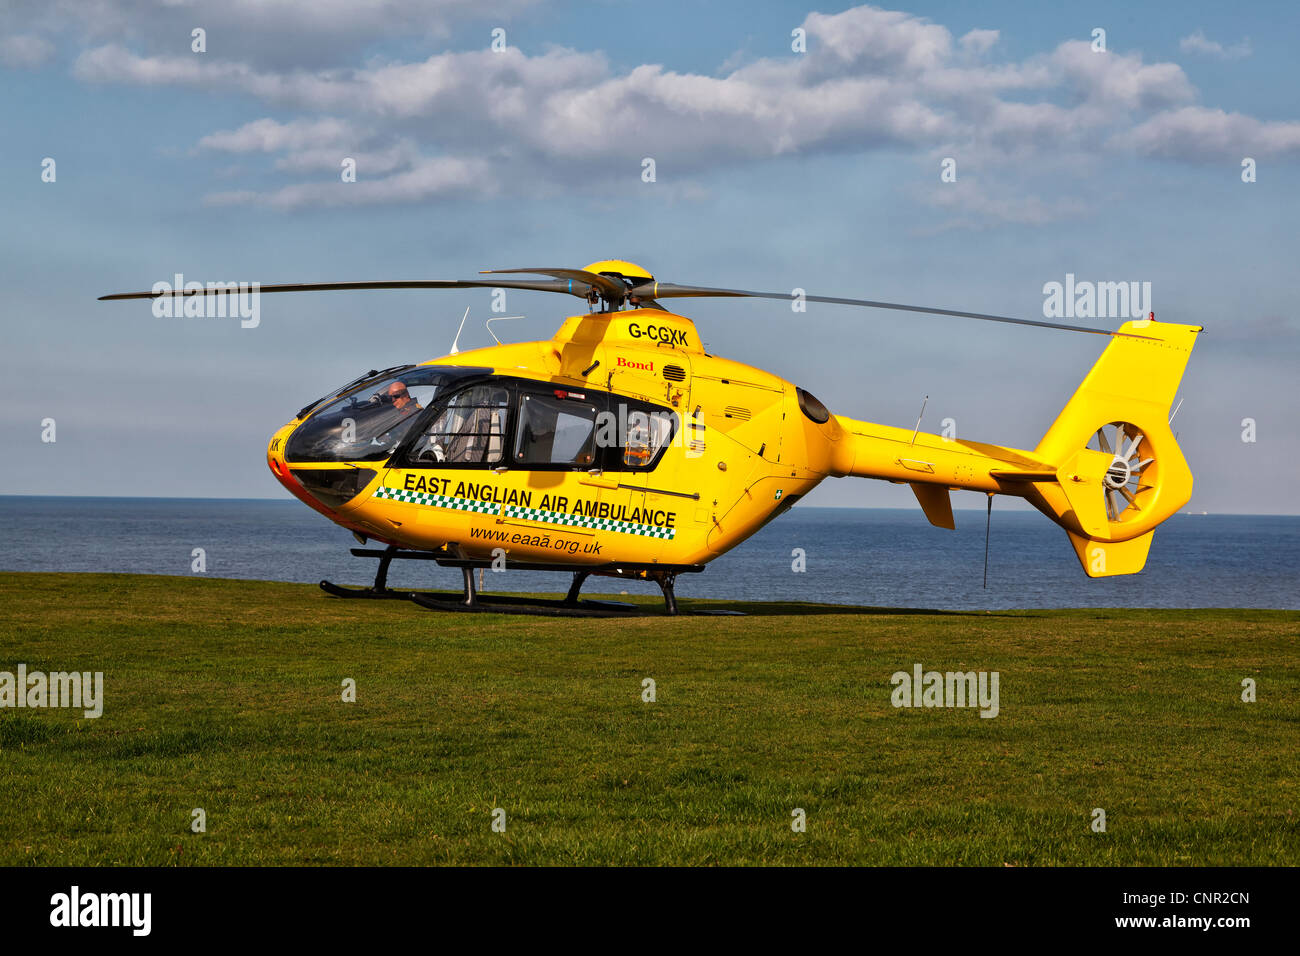 Eurocopter EC135 air ambulance helicopter - Stock Image